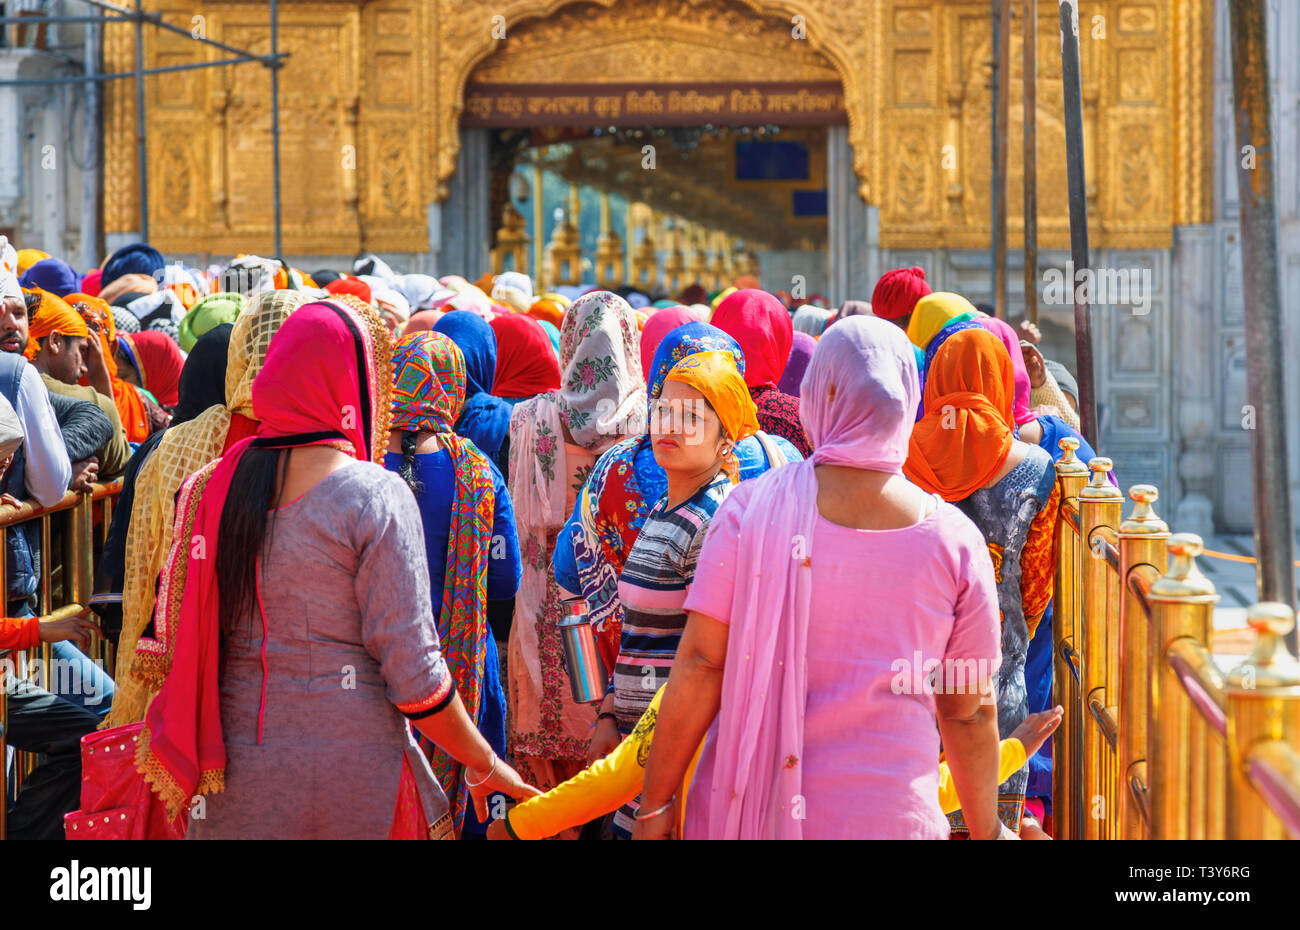 Local Sikhs queuing on the Causeway to enter the Sanctum Sanctorum of the Golden Temple of Amritsar, the holiest pilgrimage site of Sikhism - Stock Image